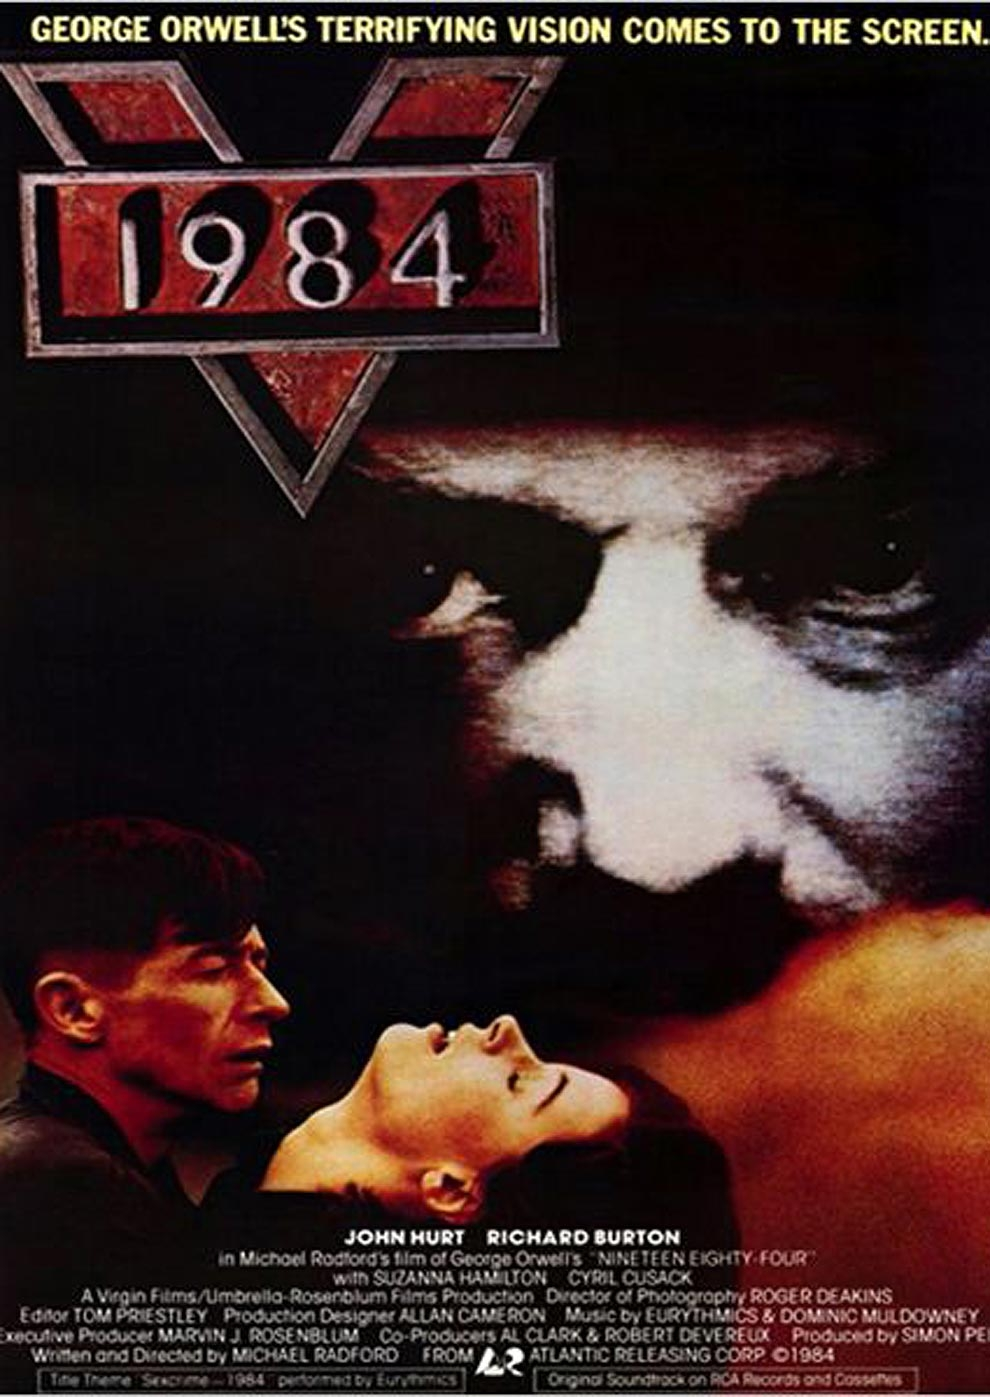 1984 (Poster)